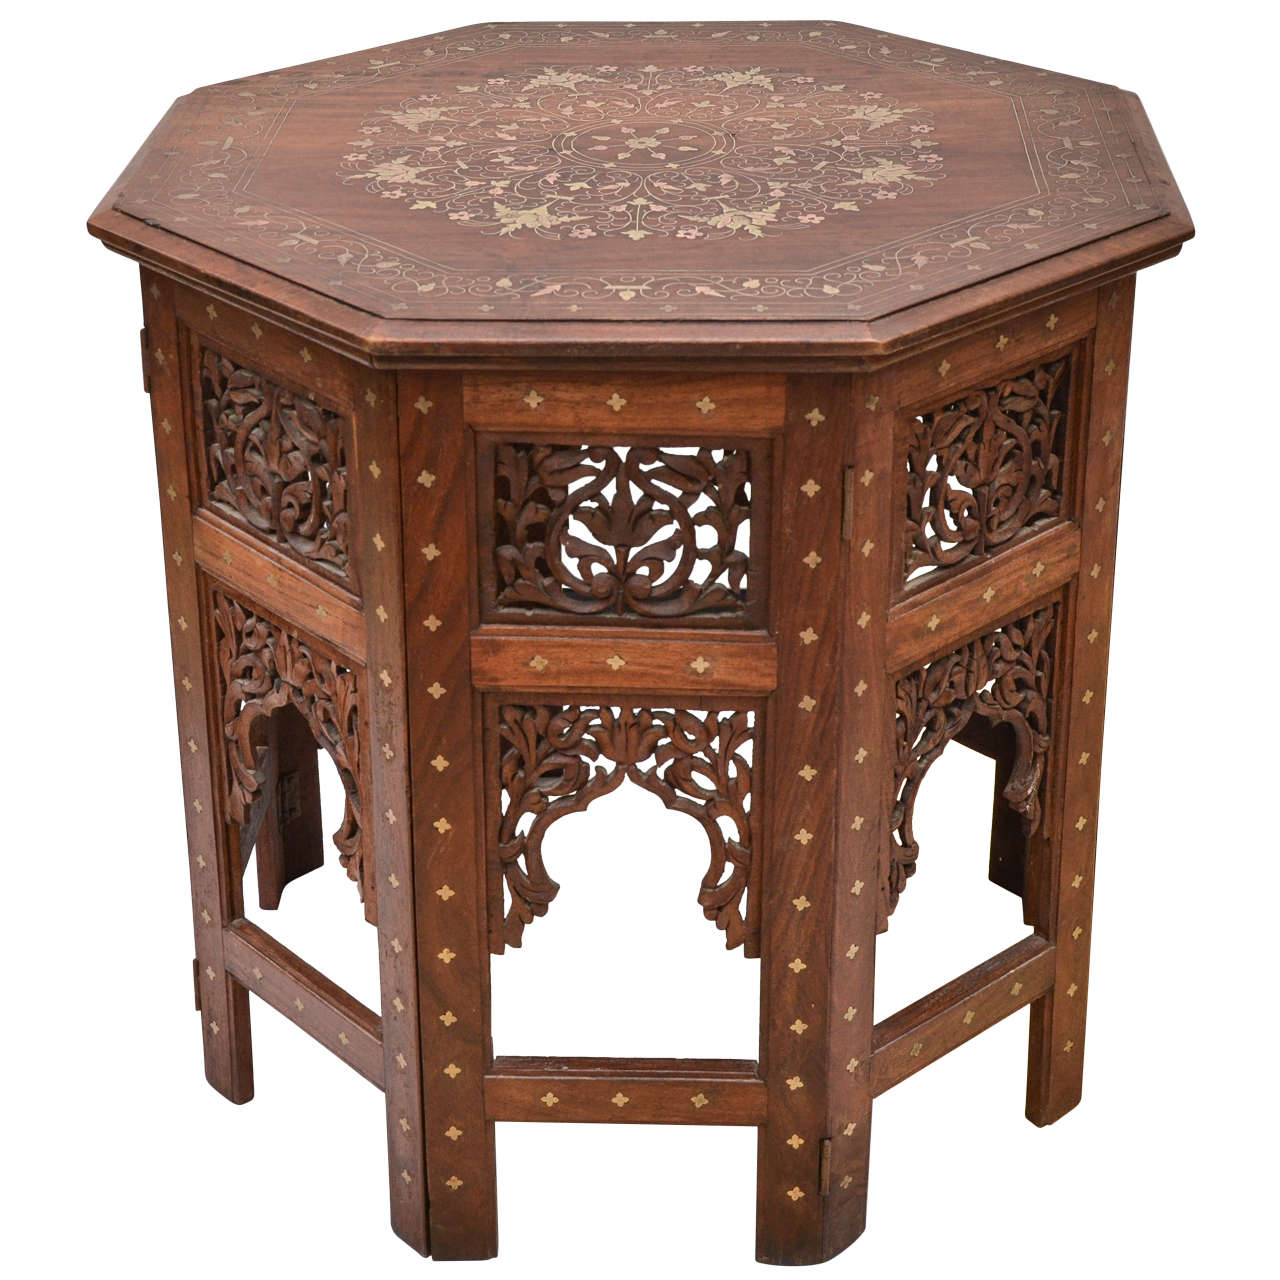 Teak Coffee Table India: Large Octagonal Indian Teak With Brass Inlay Occasional